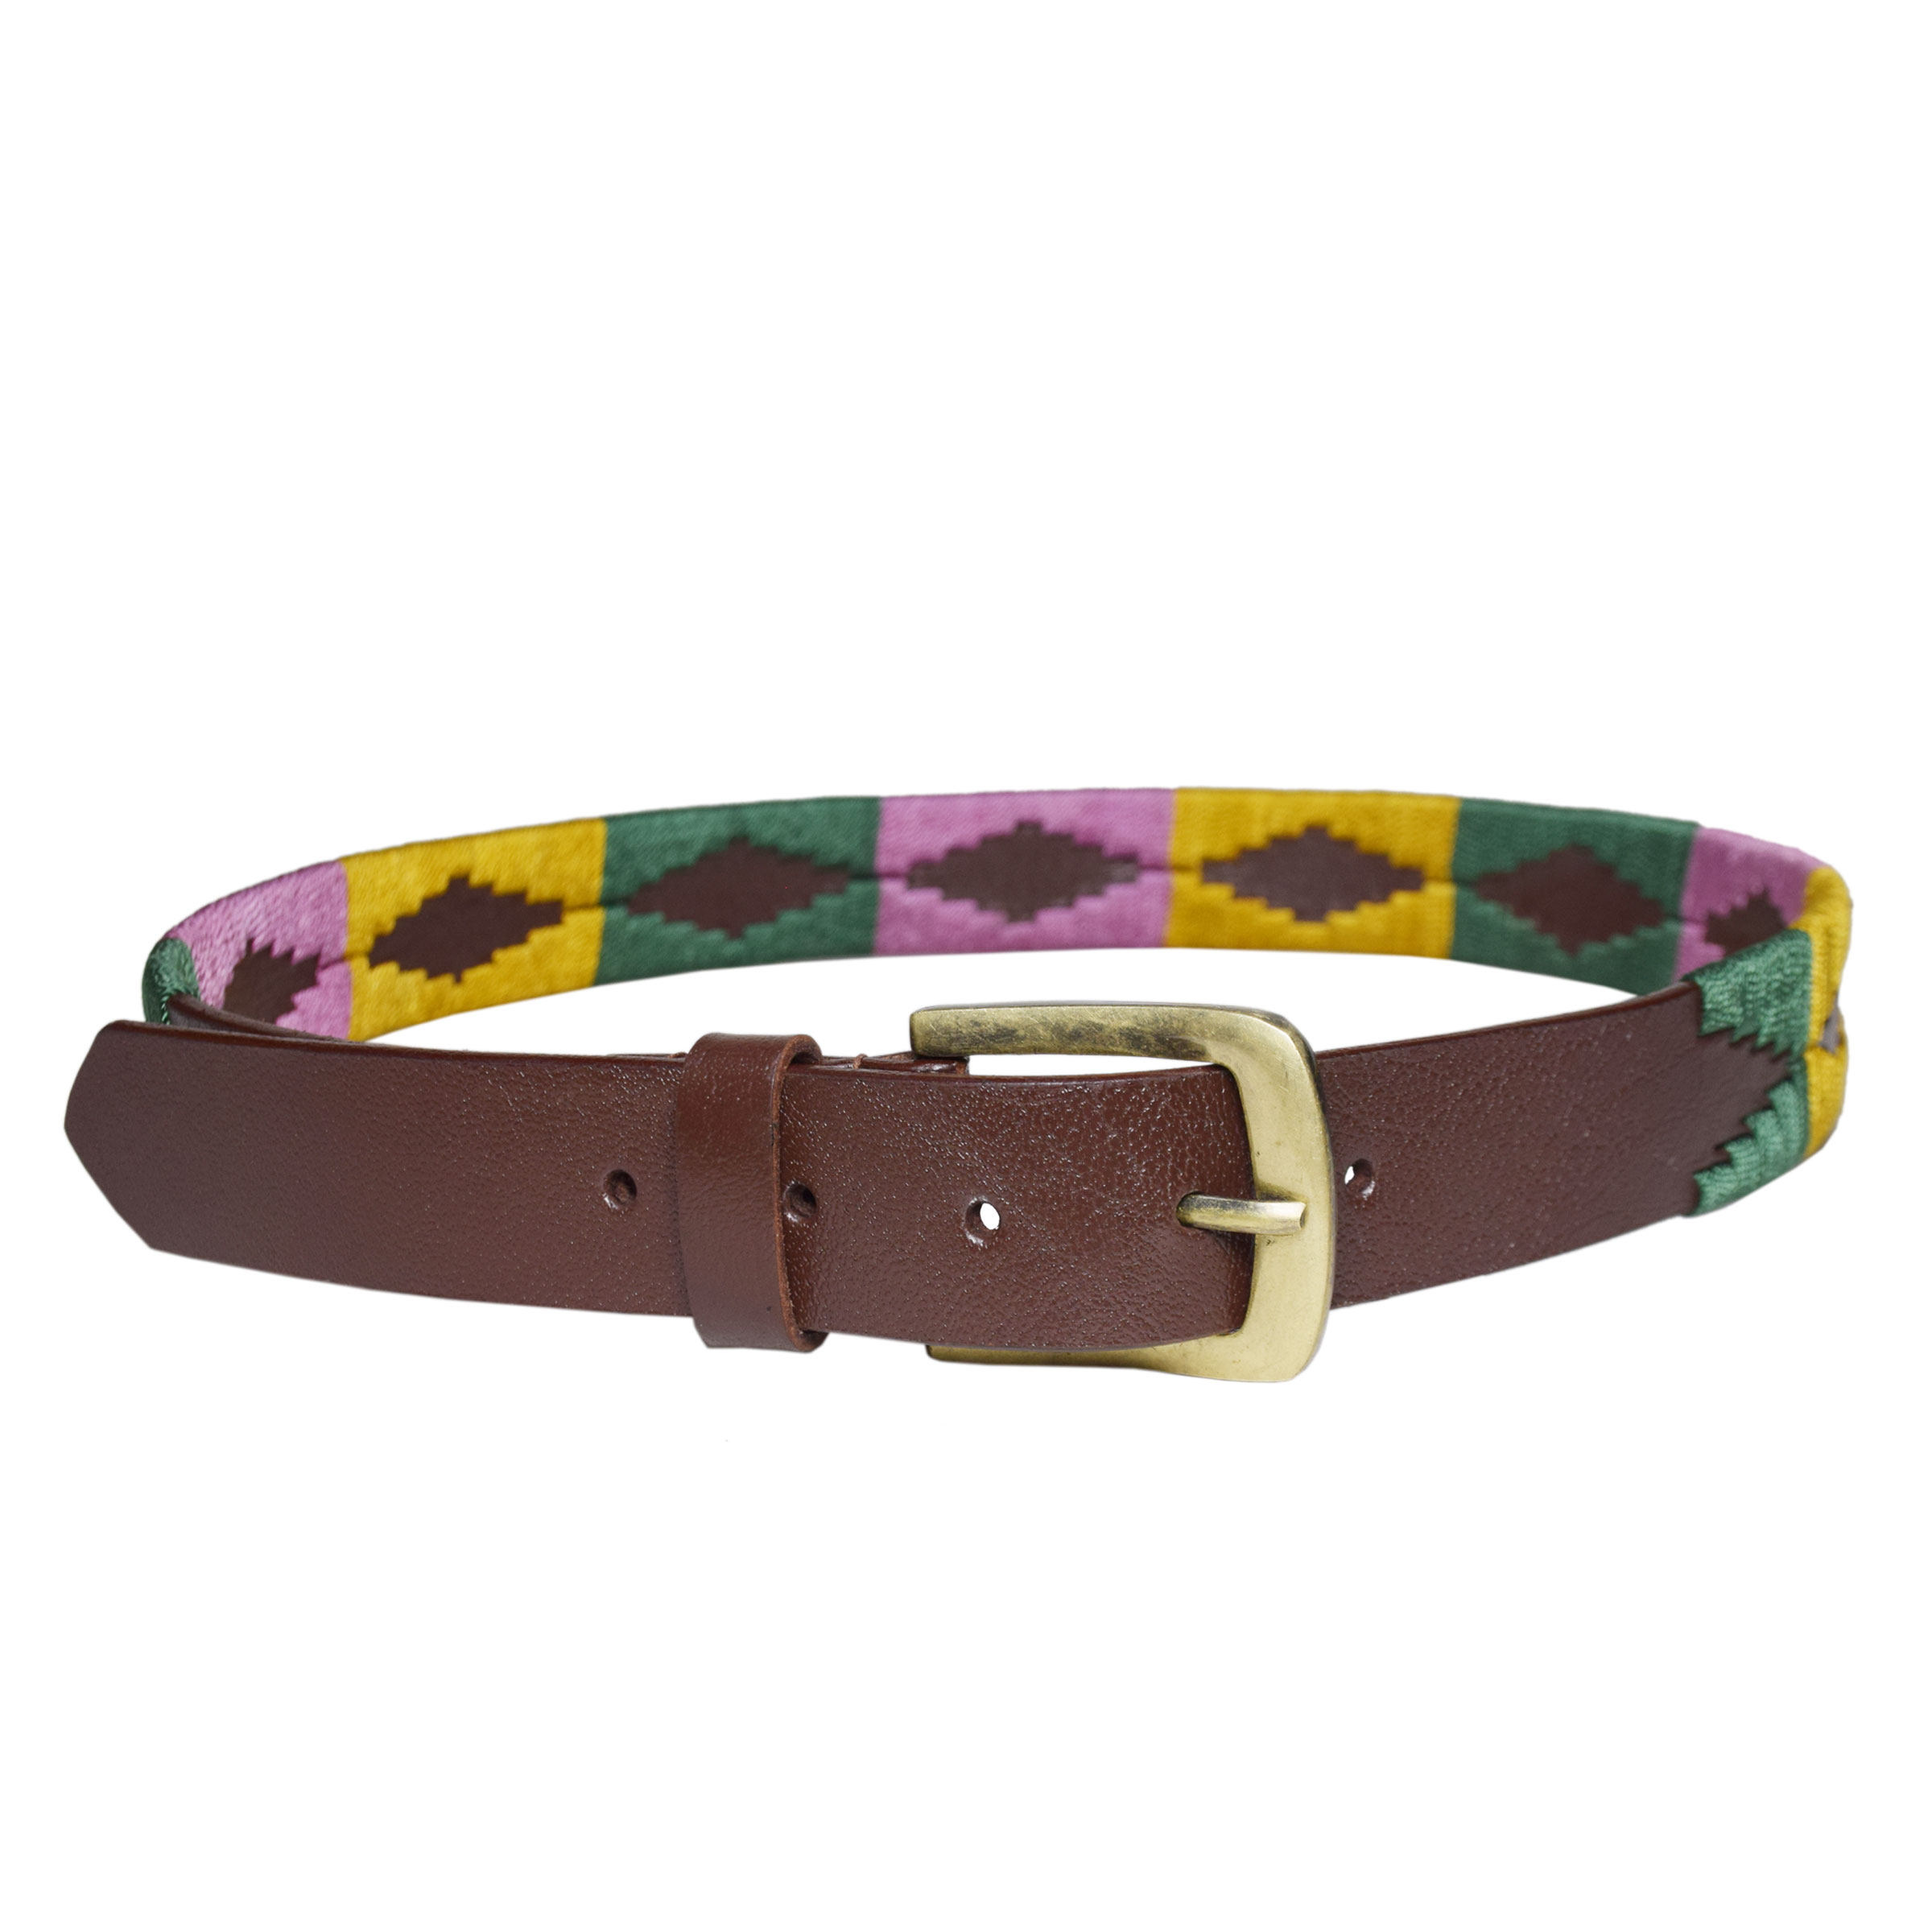 BROWN POLO BELT WITH MULTICOLOR DESIGN 1.5 INCH